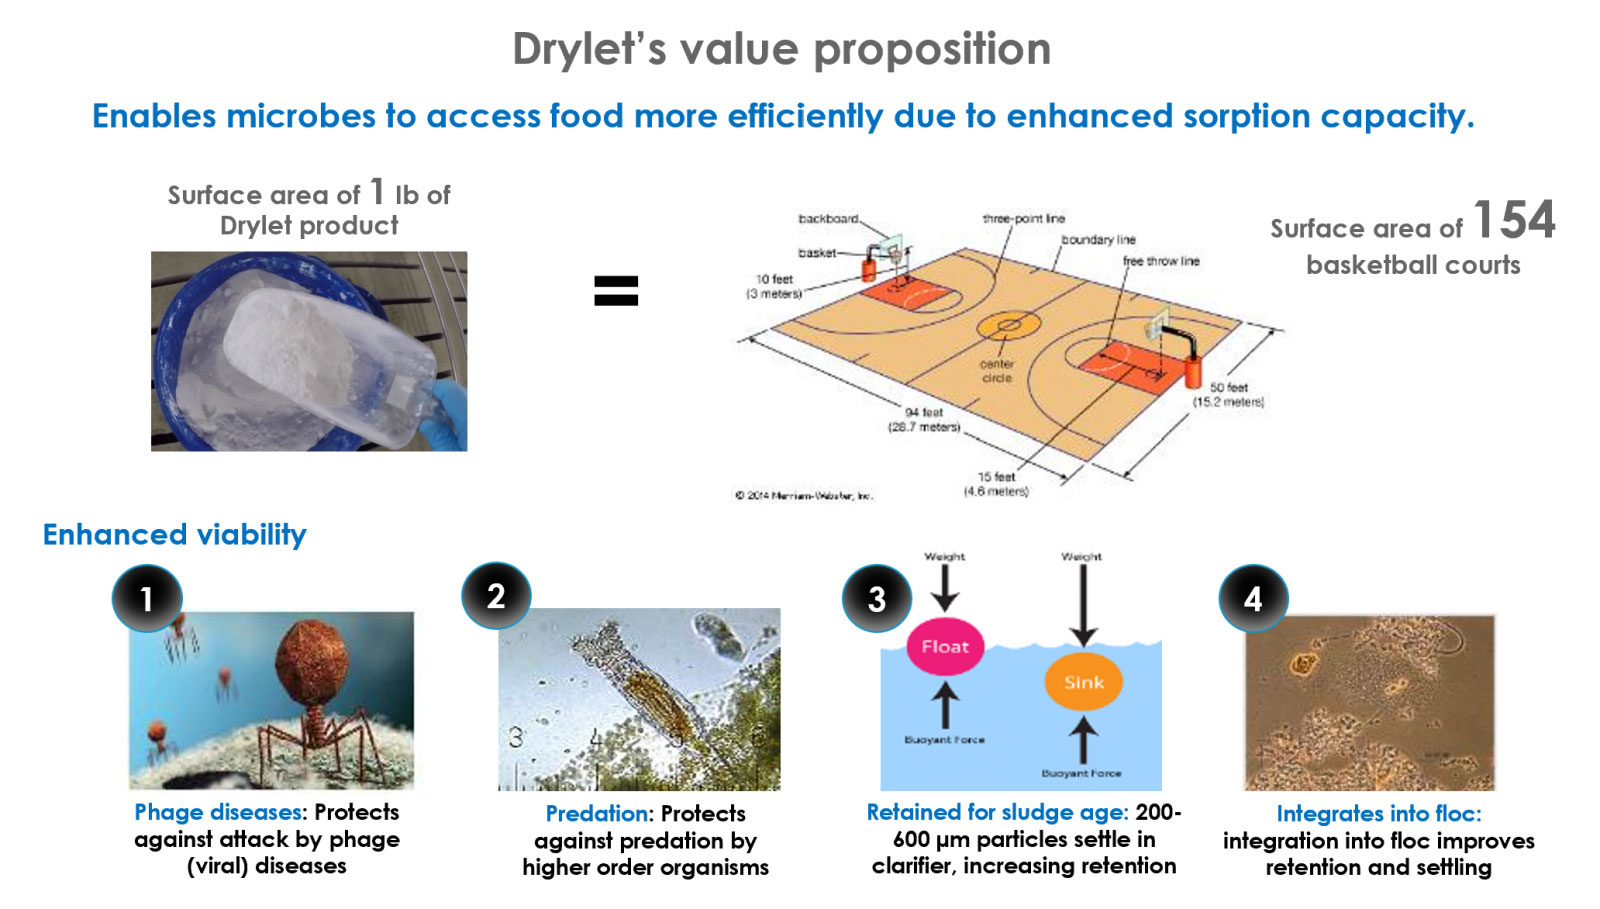 Optimize RNG and biofuel production using Drylet's biocatalyst